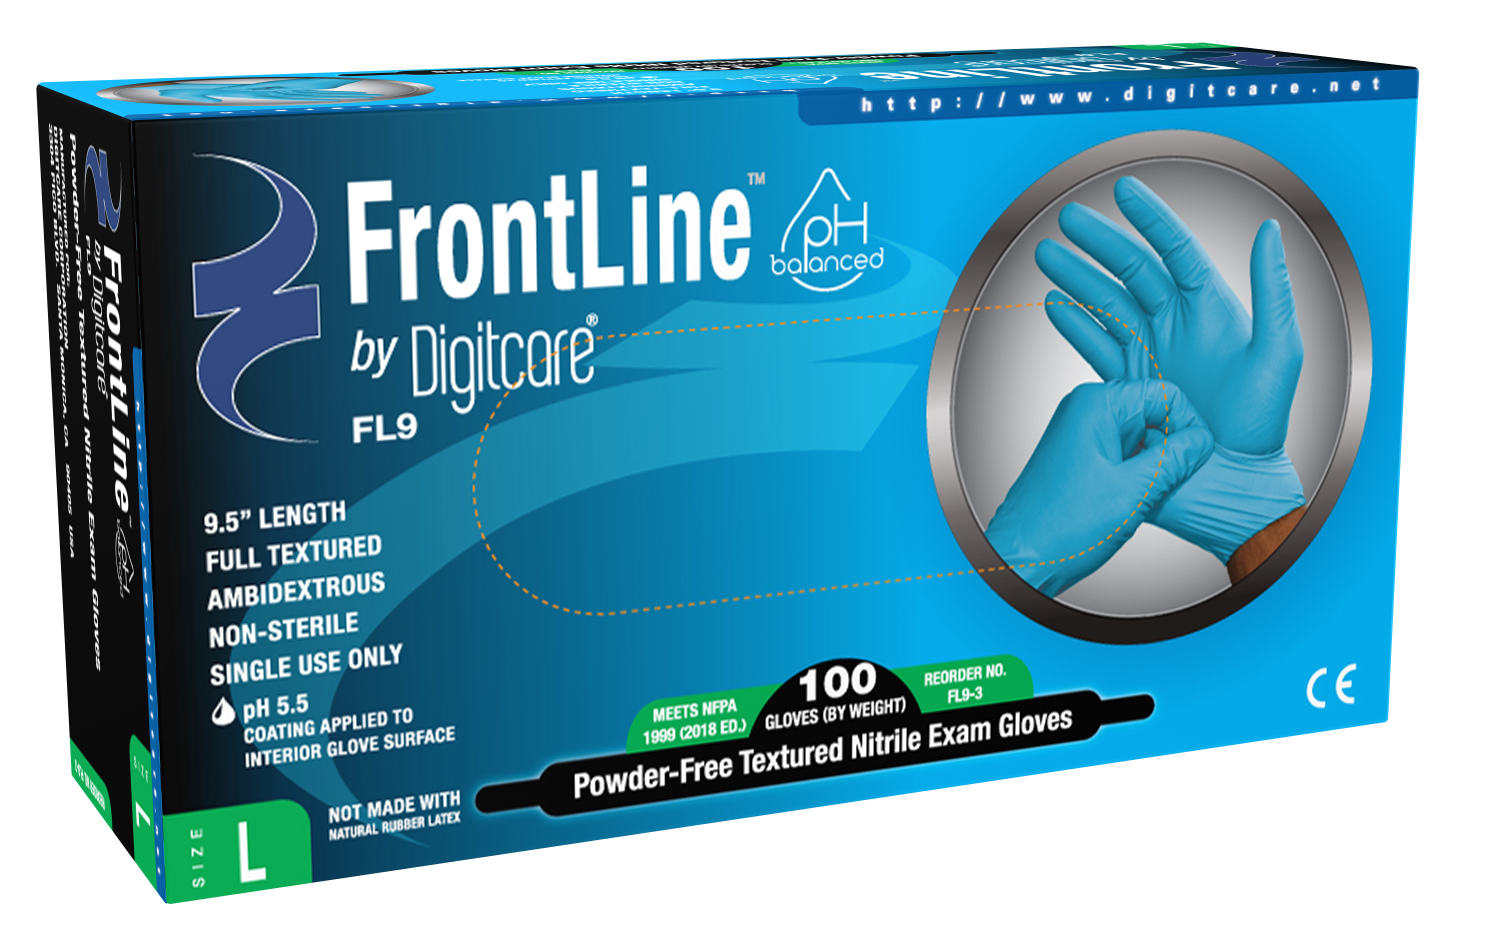 FrontLine™ FL9 Powder-Free Nitrile Exam Gloves